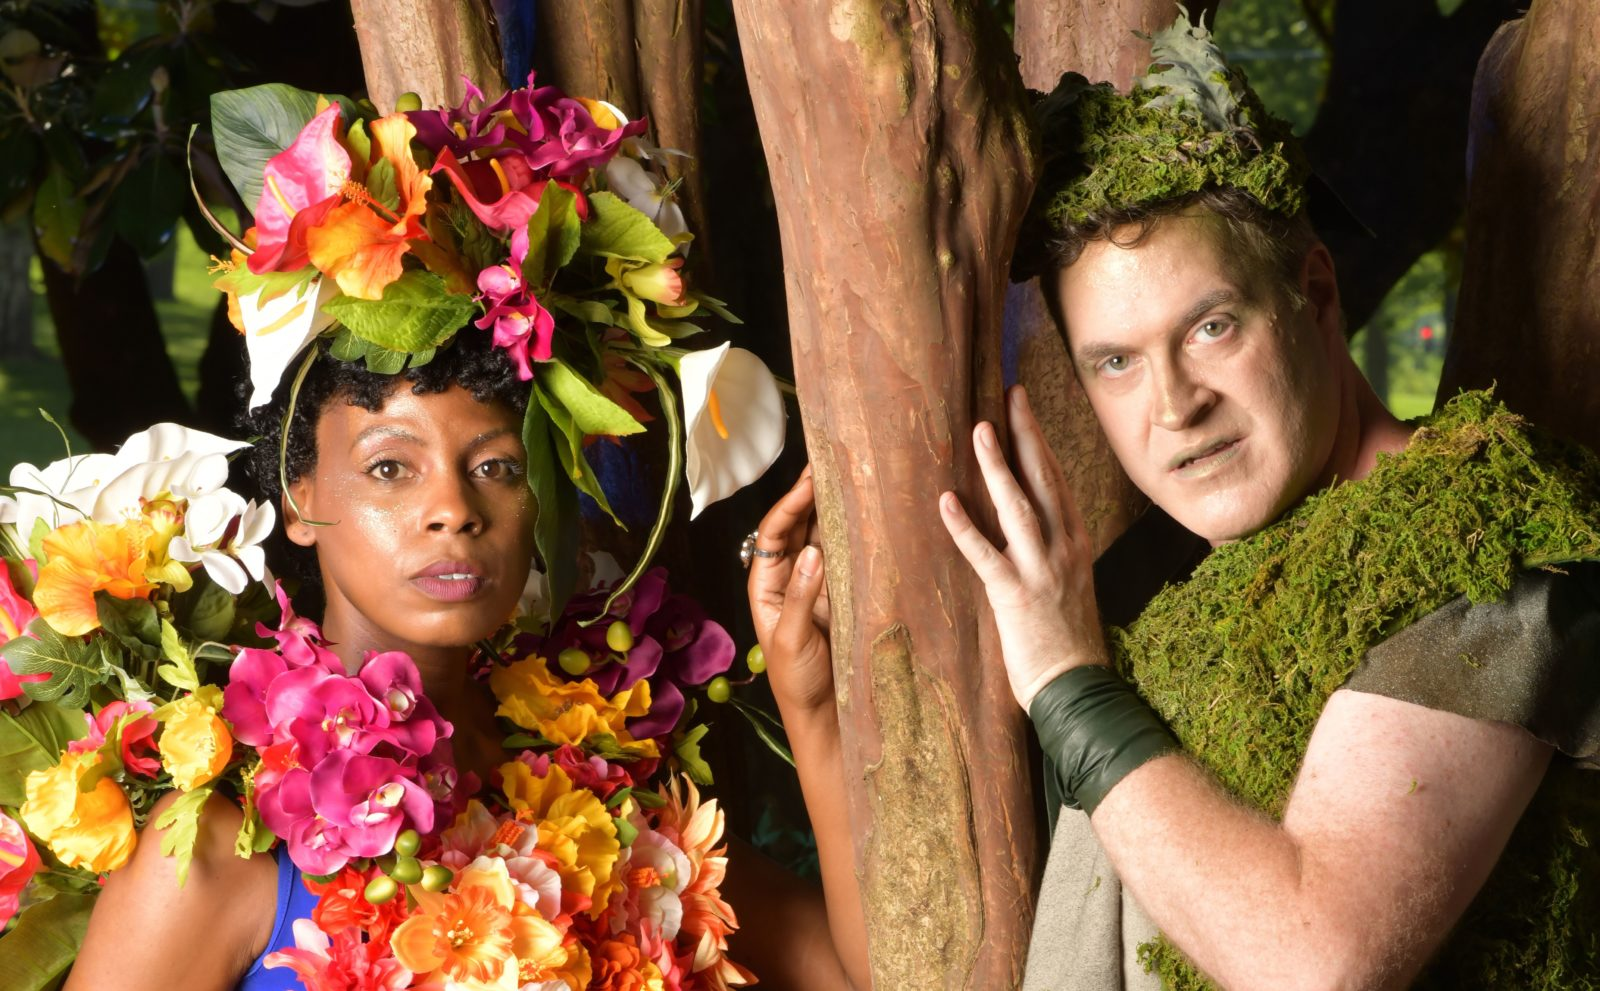 (L to r) Geoff Davin in the role of Oberon and Tamiko Robinson Steele in the role of Titania in 'A Midsummer Night's Dream' (Photo courtesy of Rick Malkin)